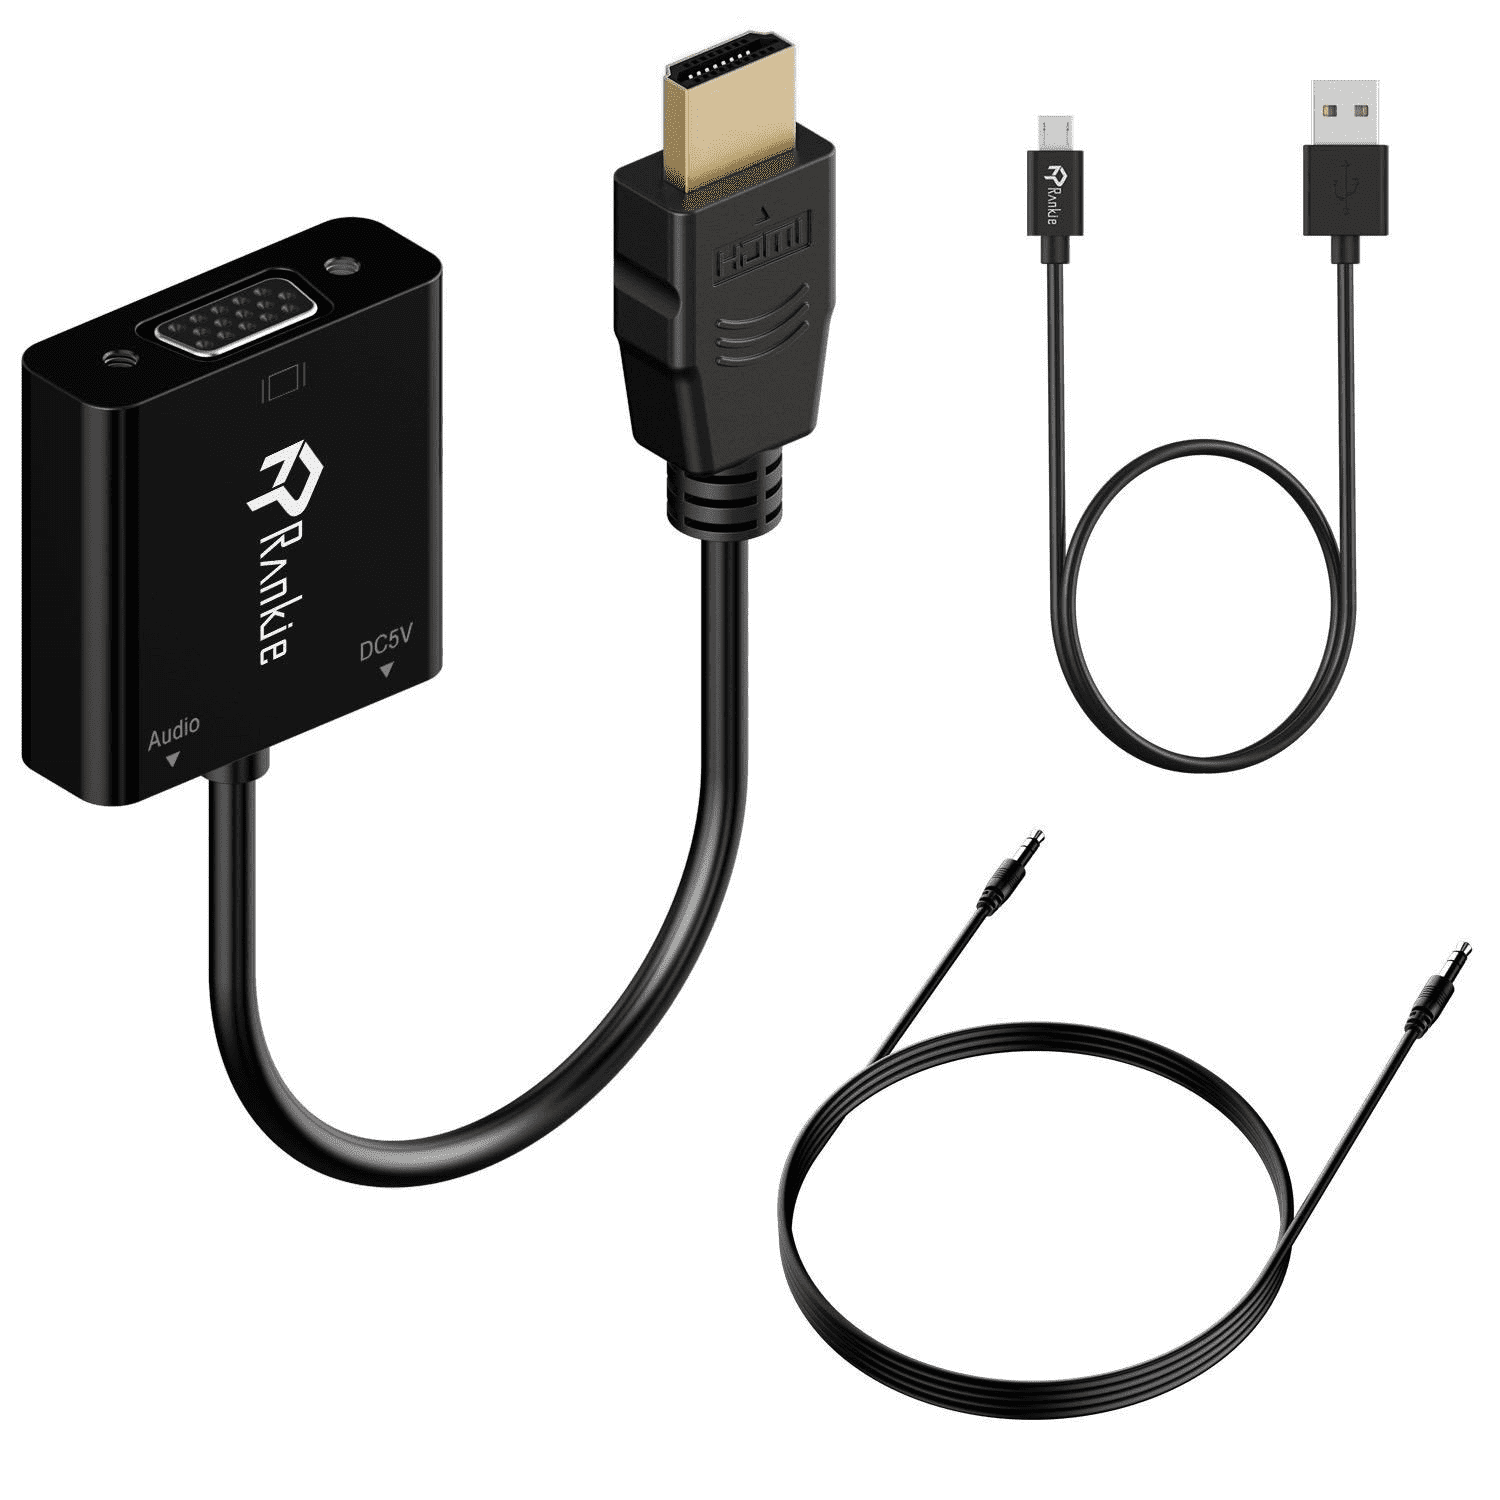 Photo of VGA to HDMI adaptor, including a 3.5mm audio cable and USB to mini USB cable